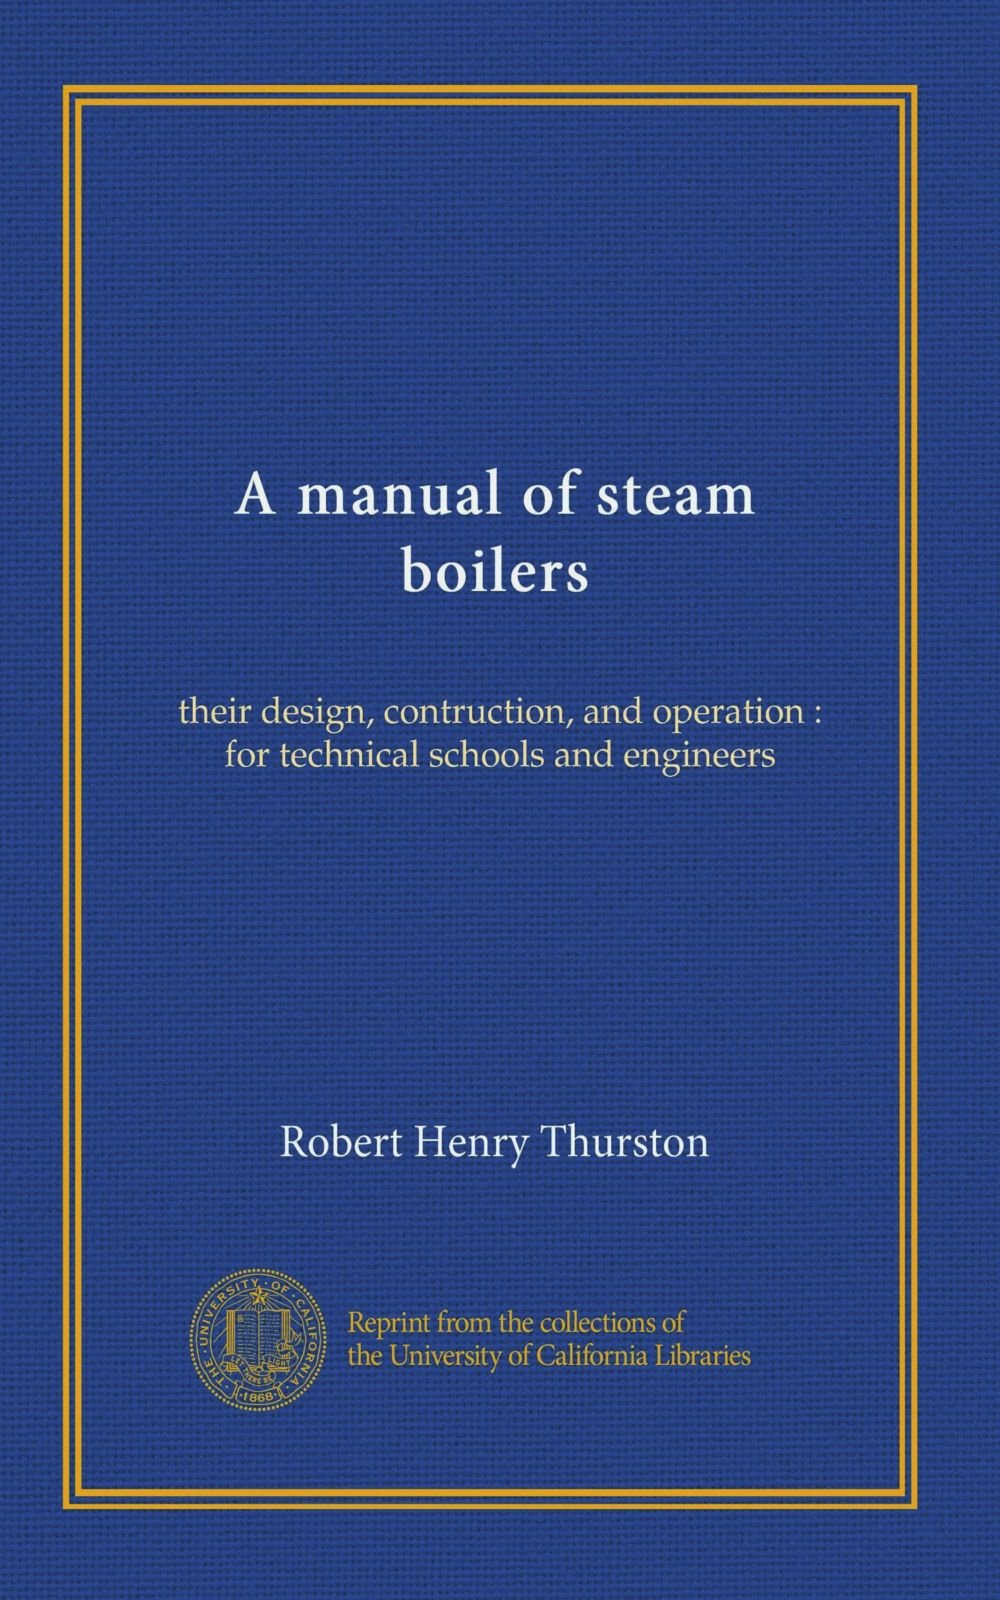 Download A manual of steam boilers: their design, contruction, and operation : for technical schools and engineers pdf epub